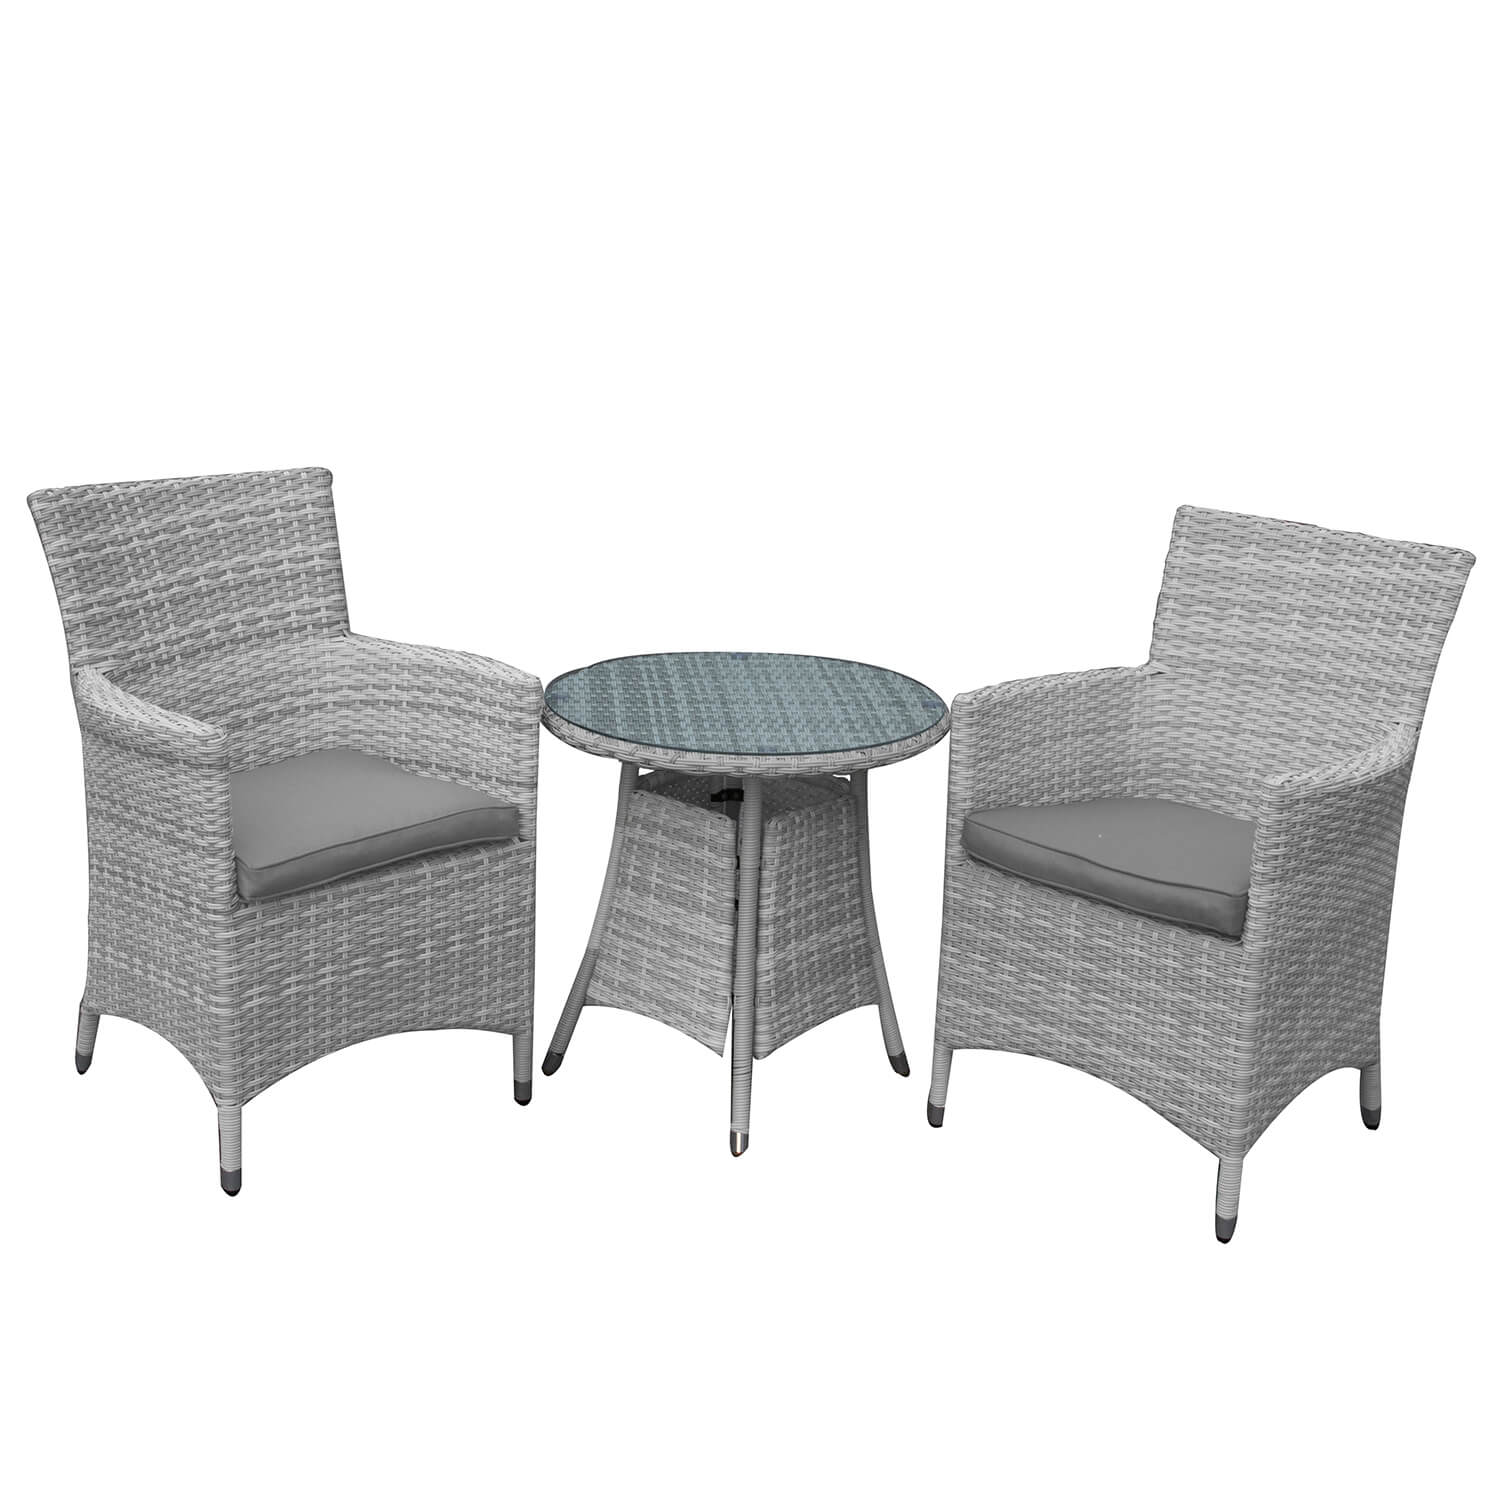 Atlanta 2 Seater Bistro Weave Furniture Set In Grey Mix